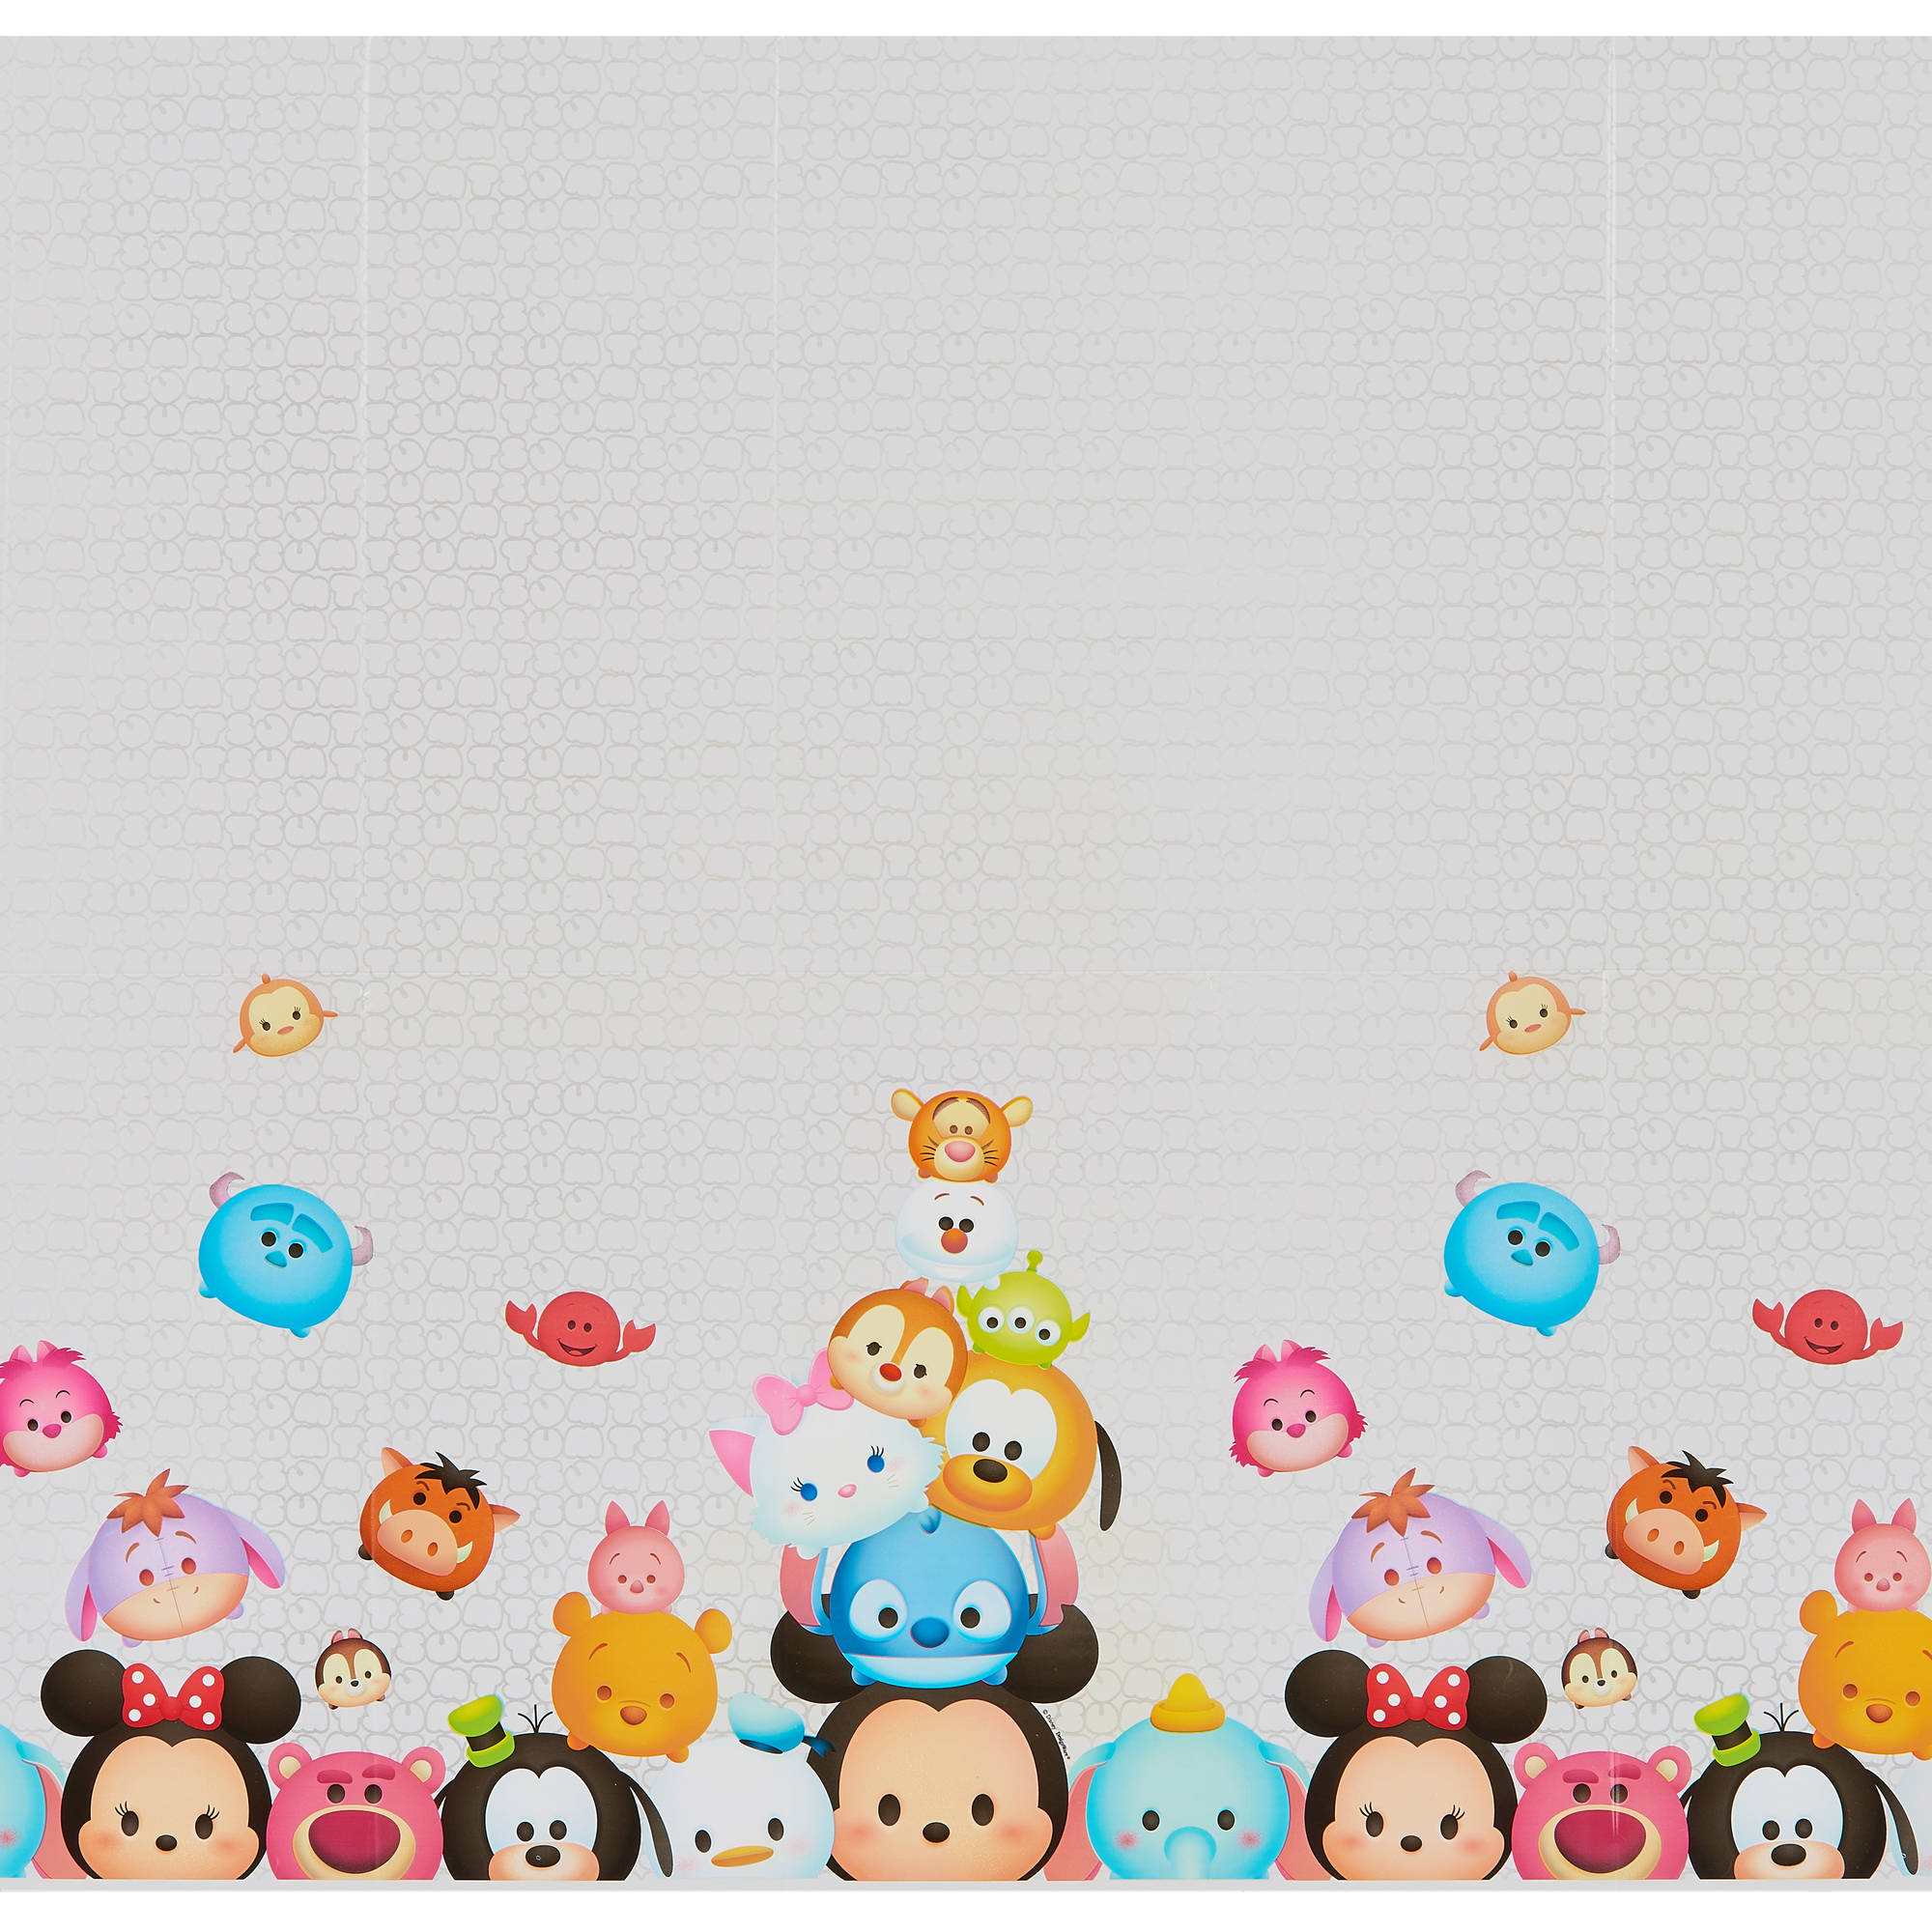 how to add friends on line tsum tsum